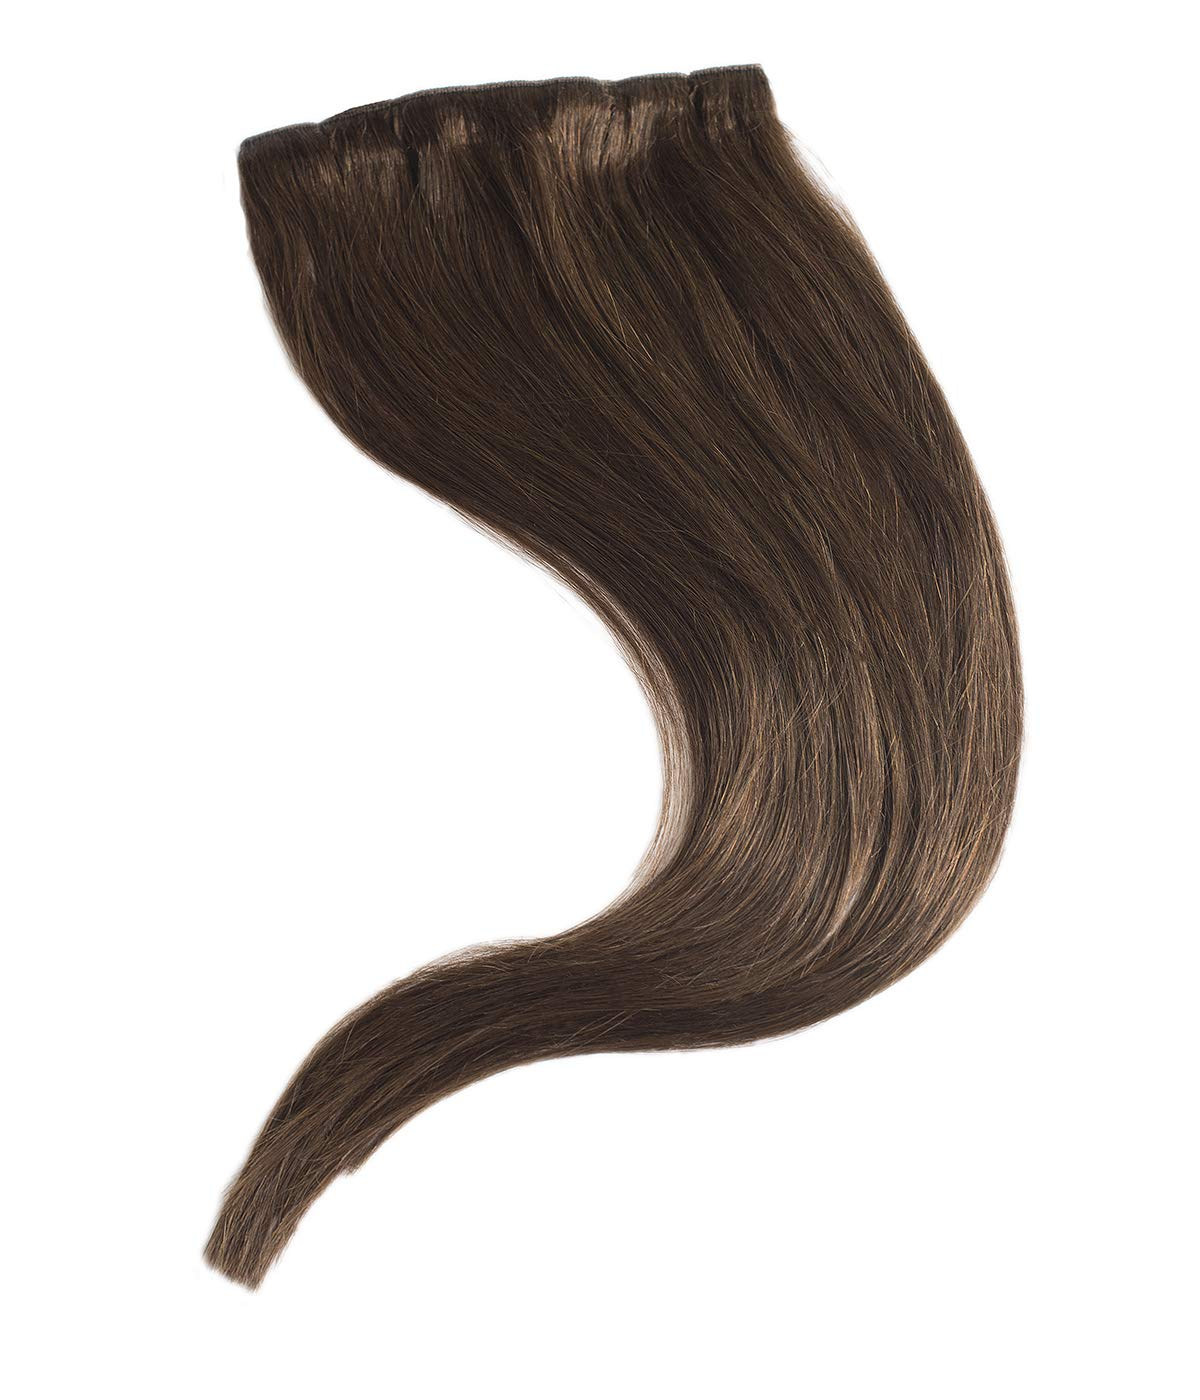 Maxy #4 Chocolate Brown Clip In 100% Human Hair Extensions 20'' inches 170-230grams Remy Triple Wefted High Density Silky Hair (11 pieces set) (230g) by Maxy Extensions